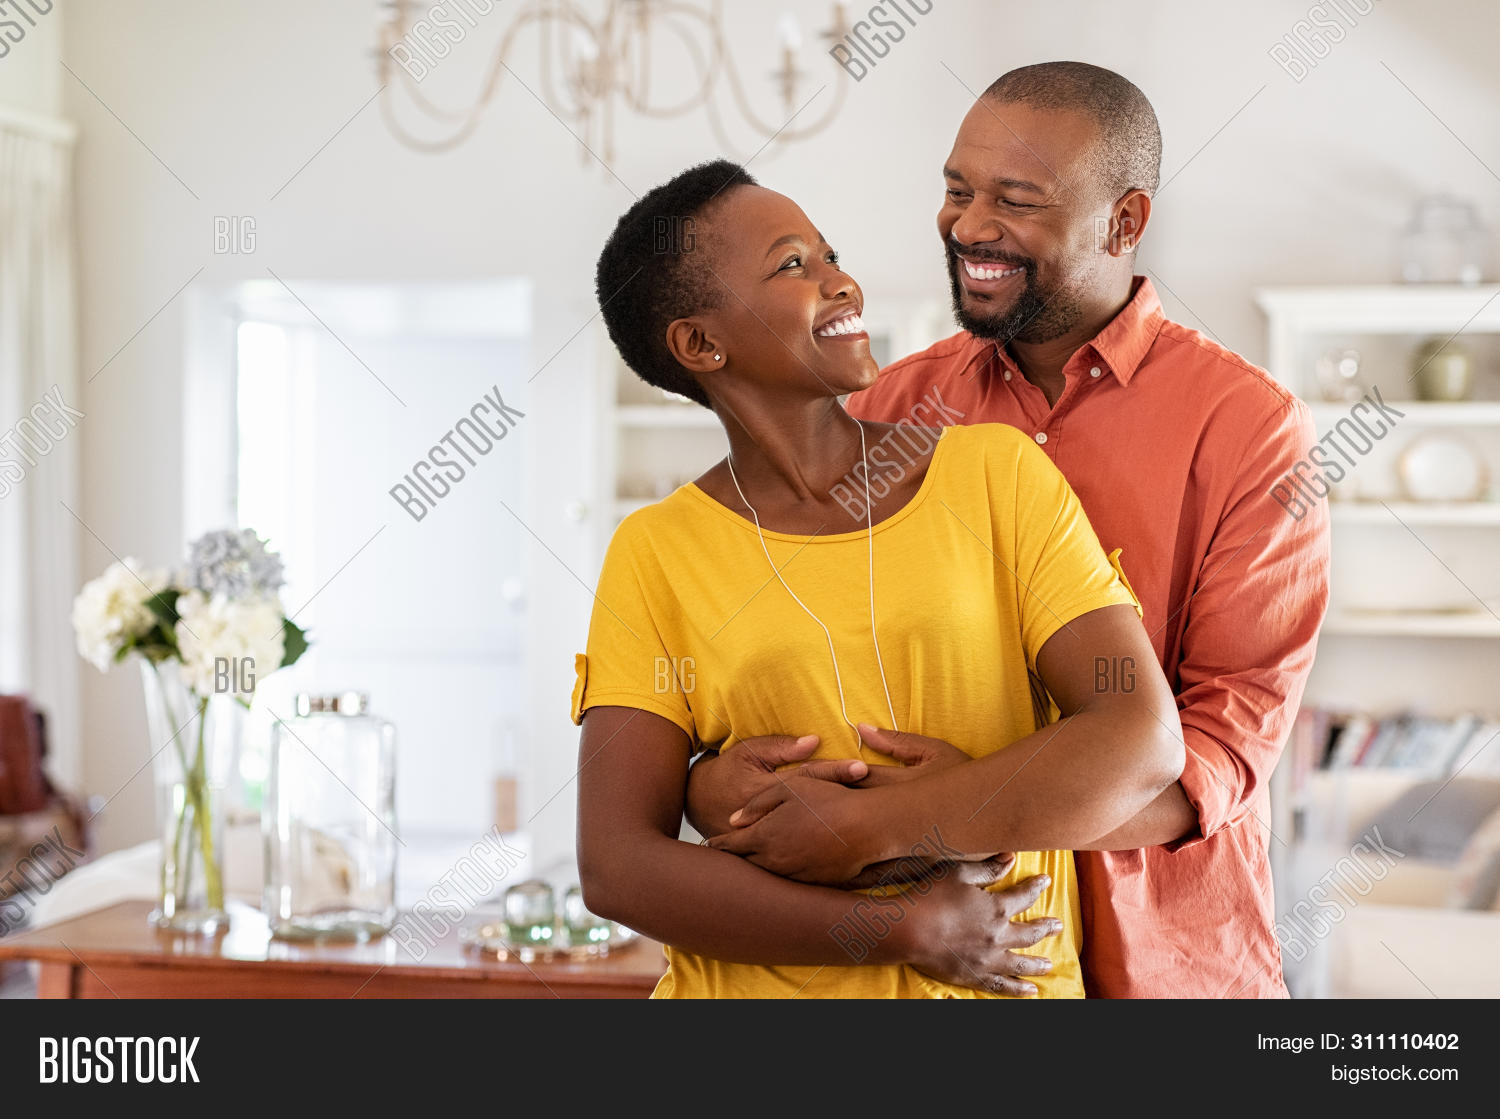 affection,african,american,beautiful,black,bonding,boyfriend,casual,celebration,cheerful,copy space,couple in love,embrace,embracing,fall in love,from behind,future,girlfriend,happy,home,hug,hugging couple,husband,indoors,laughing couple,looking at each other,love,loving family,man,married,mature,mid adult man,mid adult woman,middle aged couple,middle aged man,middle aged woman,newly married,relationship,romance,romantic,romantic man,smile,standing,together,toothy smile,wife,woman